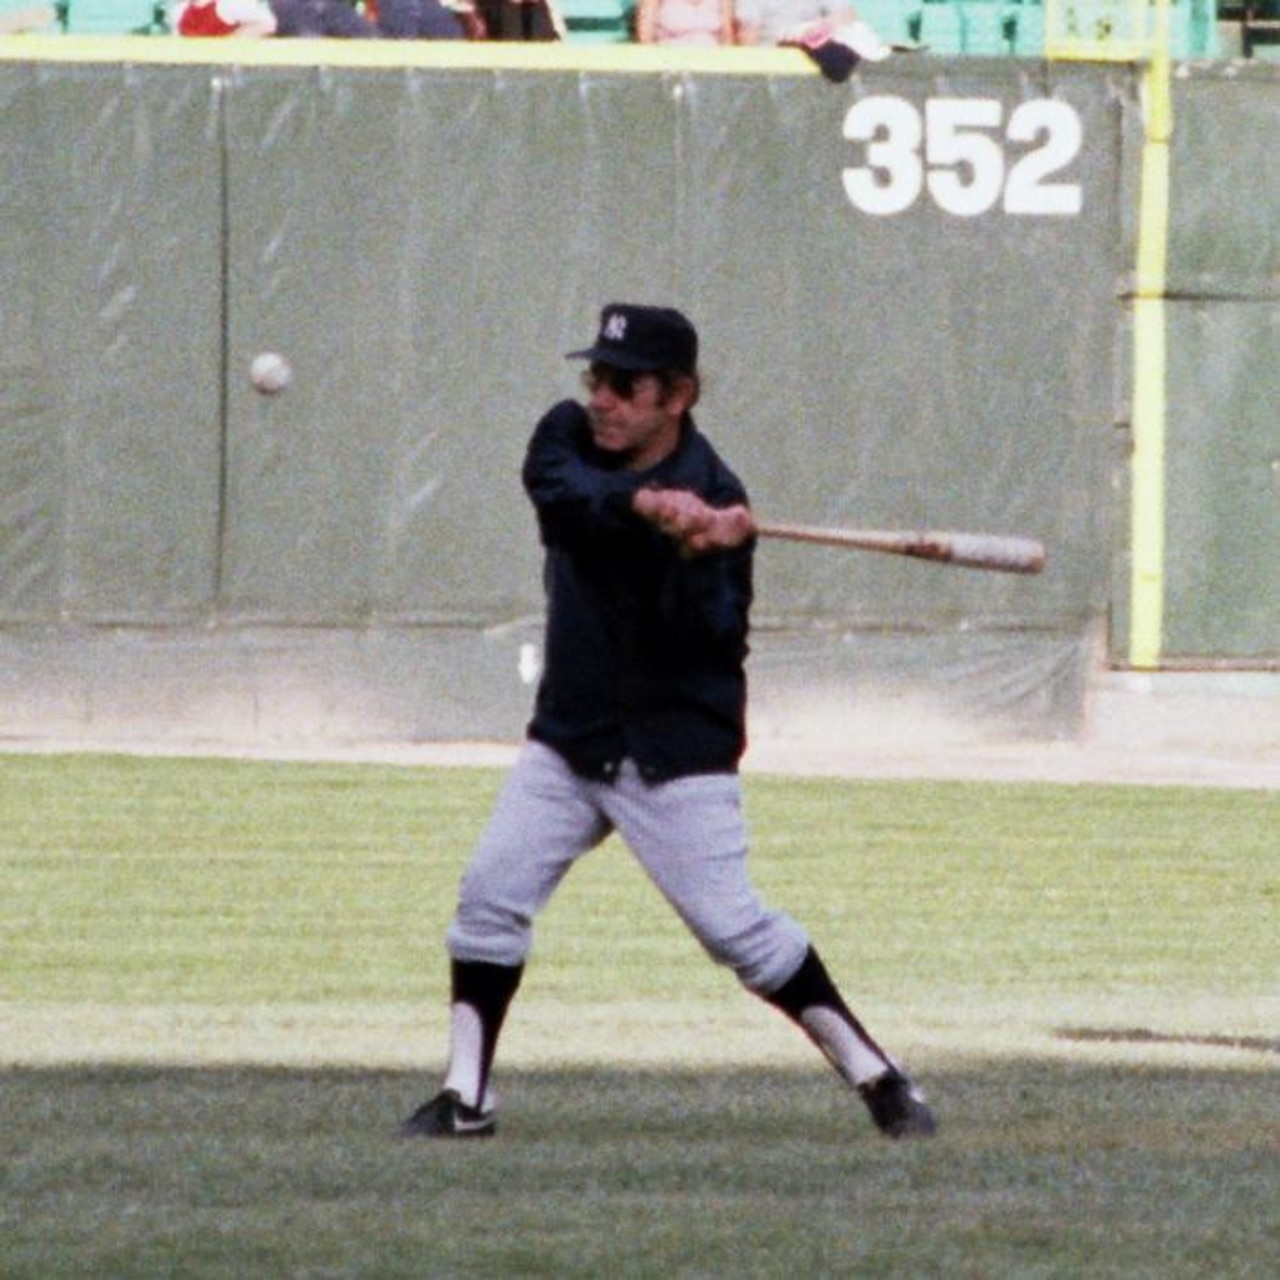 A baseball coach swings at a ball.